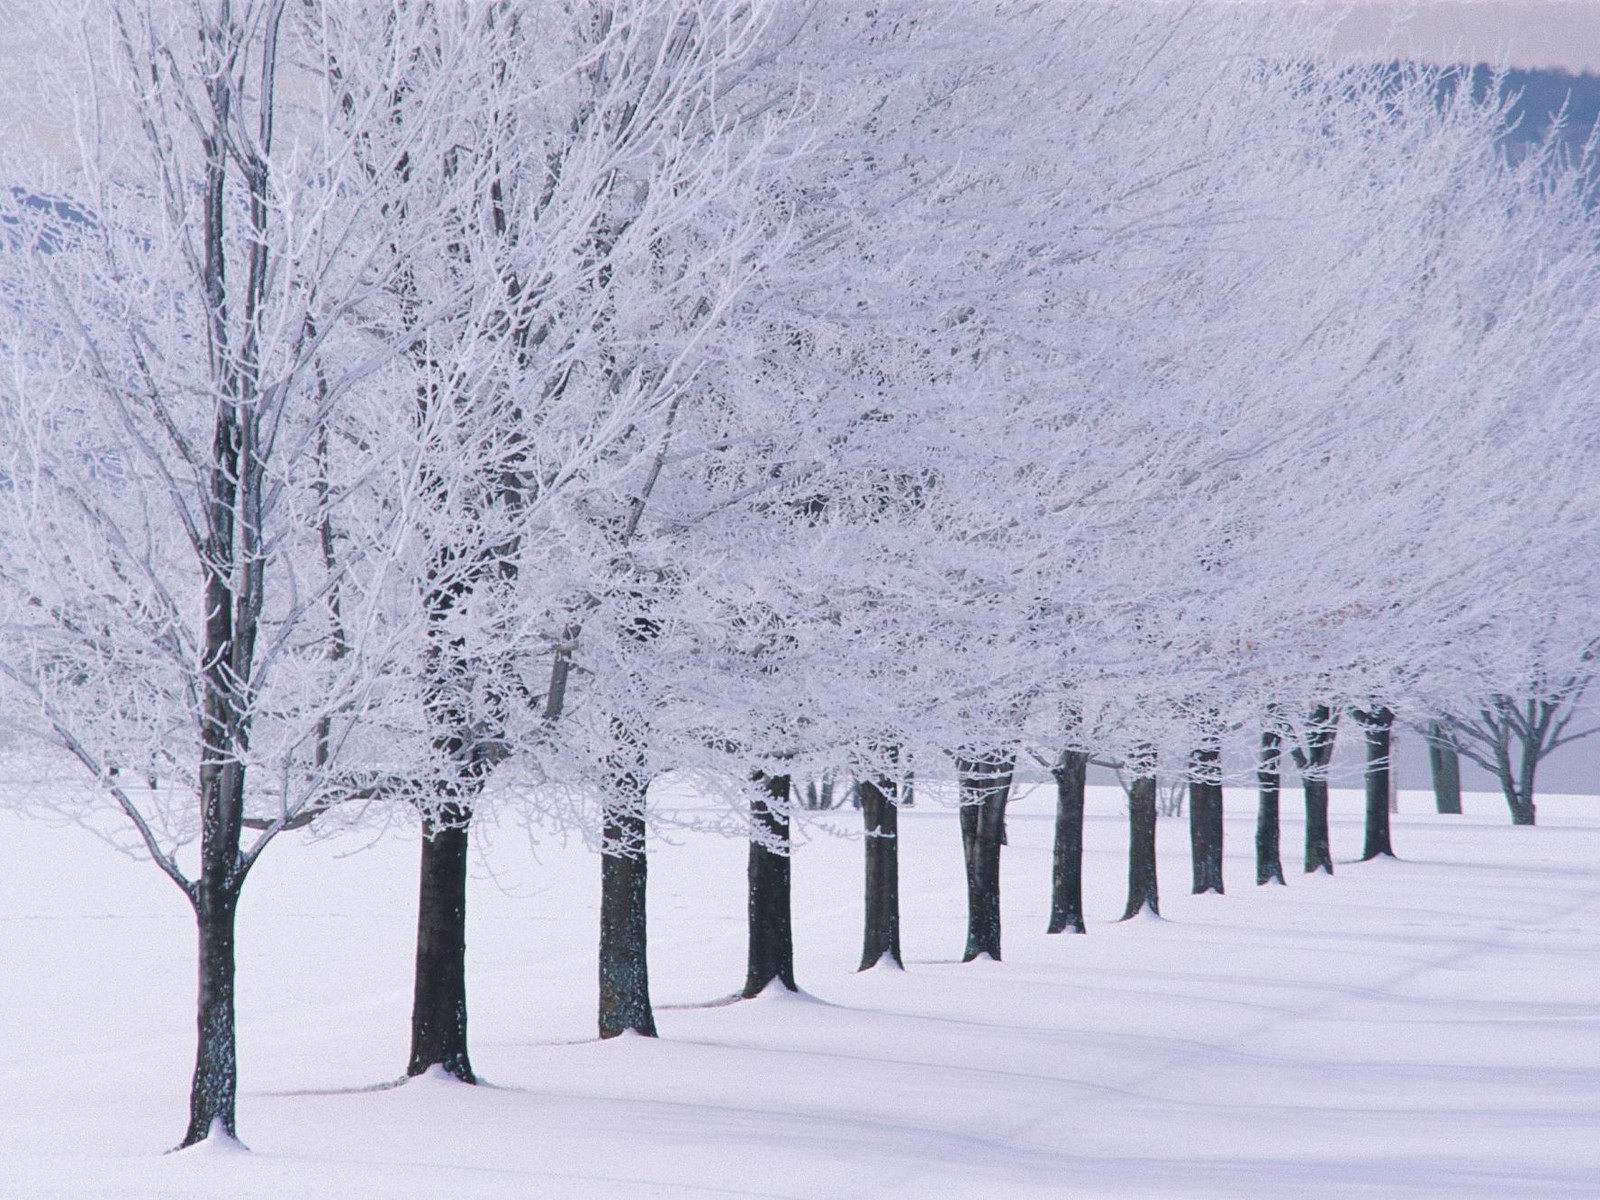 Snow Images In Winter HD Wallpaper And Background Photos